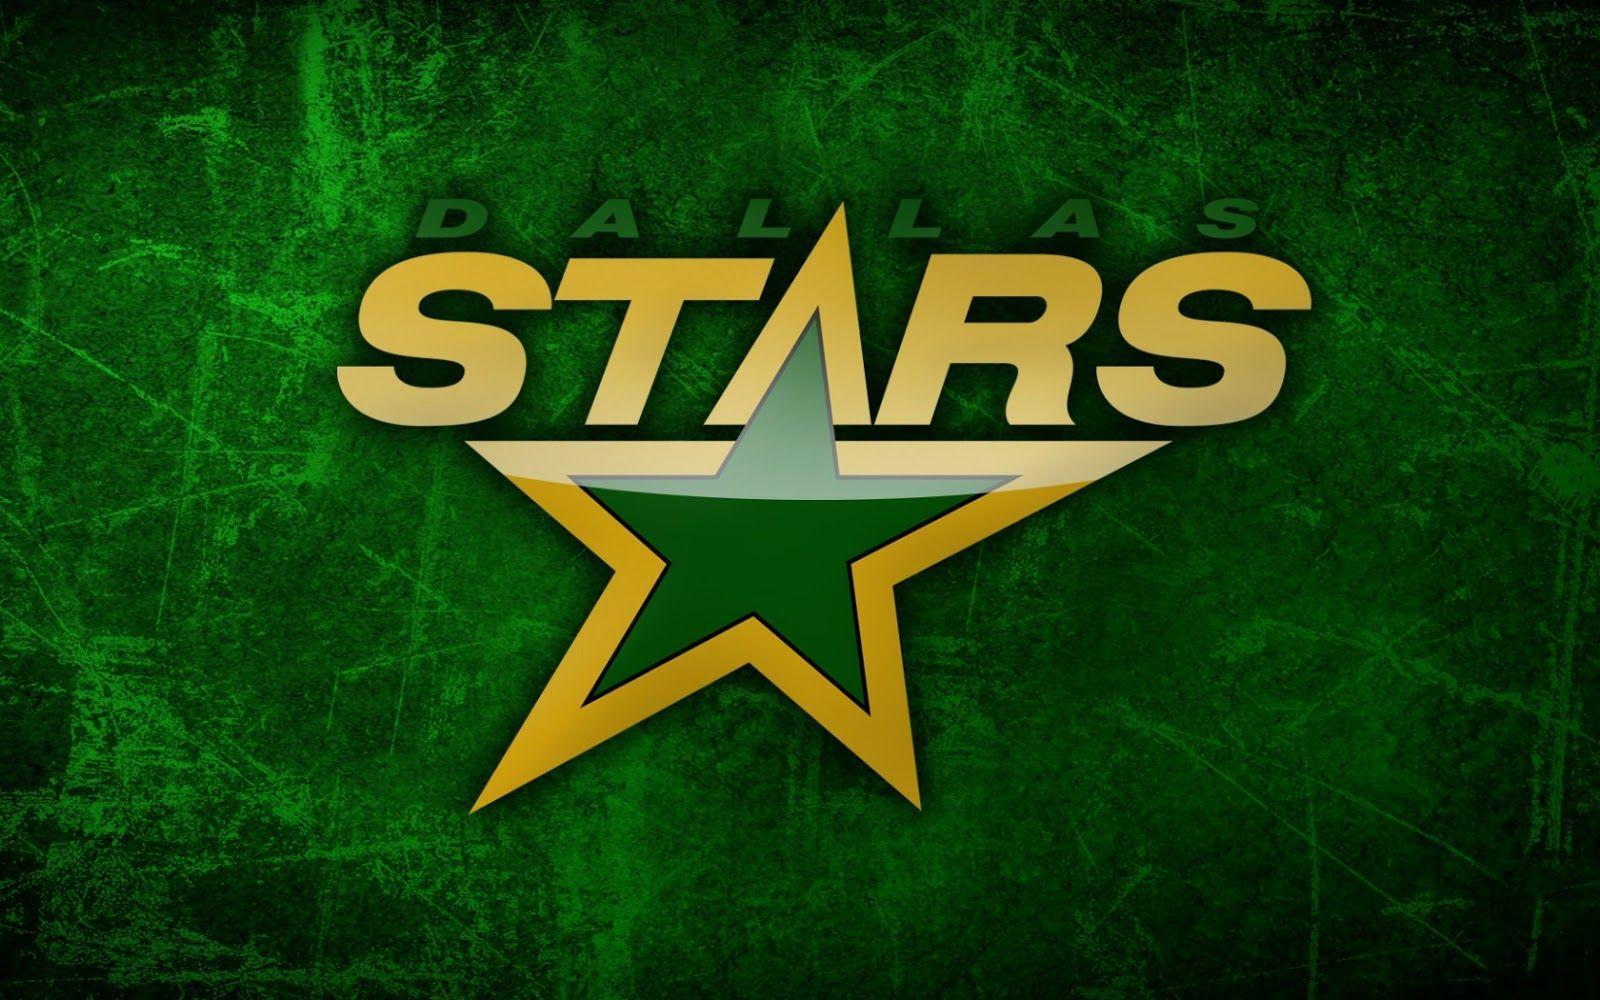 Dallas Stars Mobile Wallpaper - WallpaperSafari